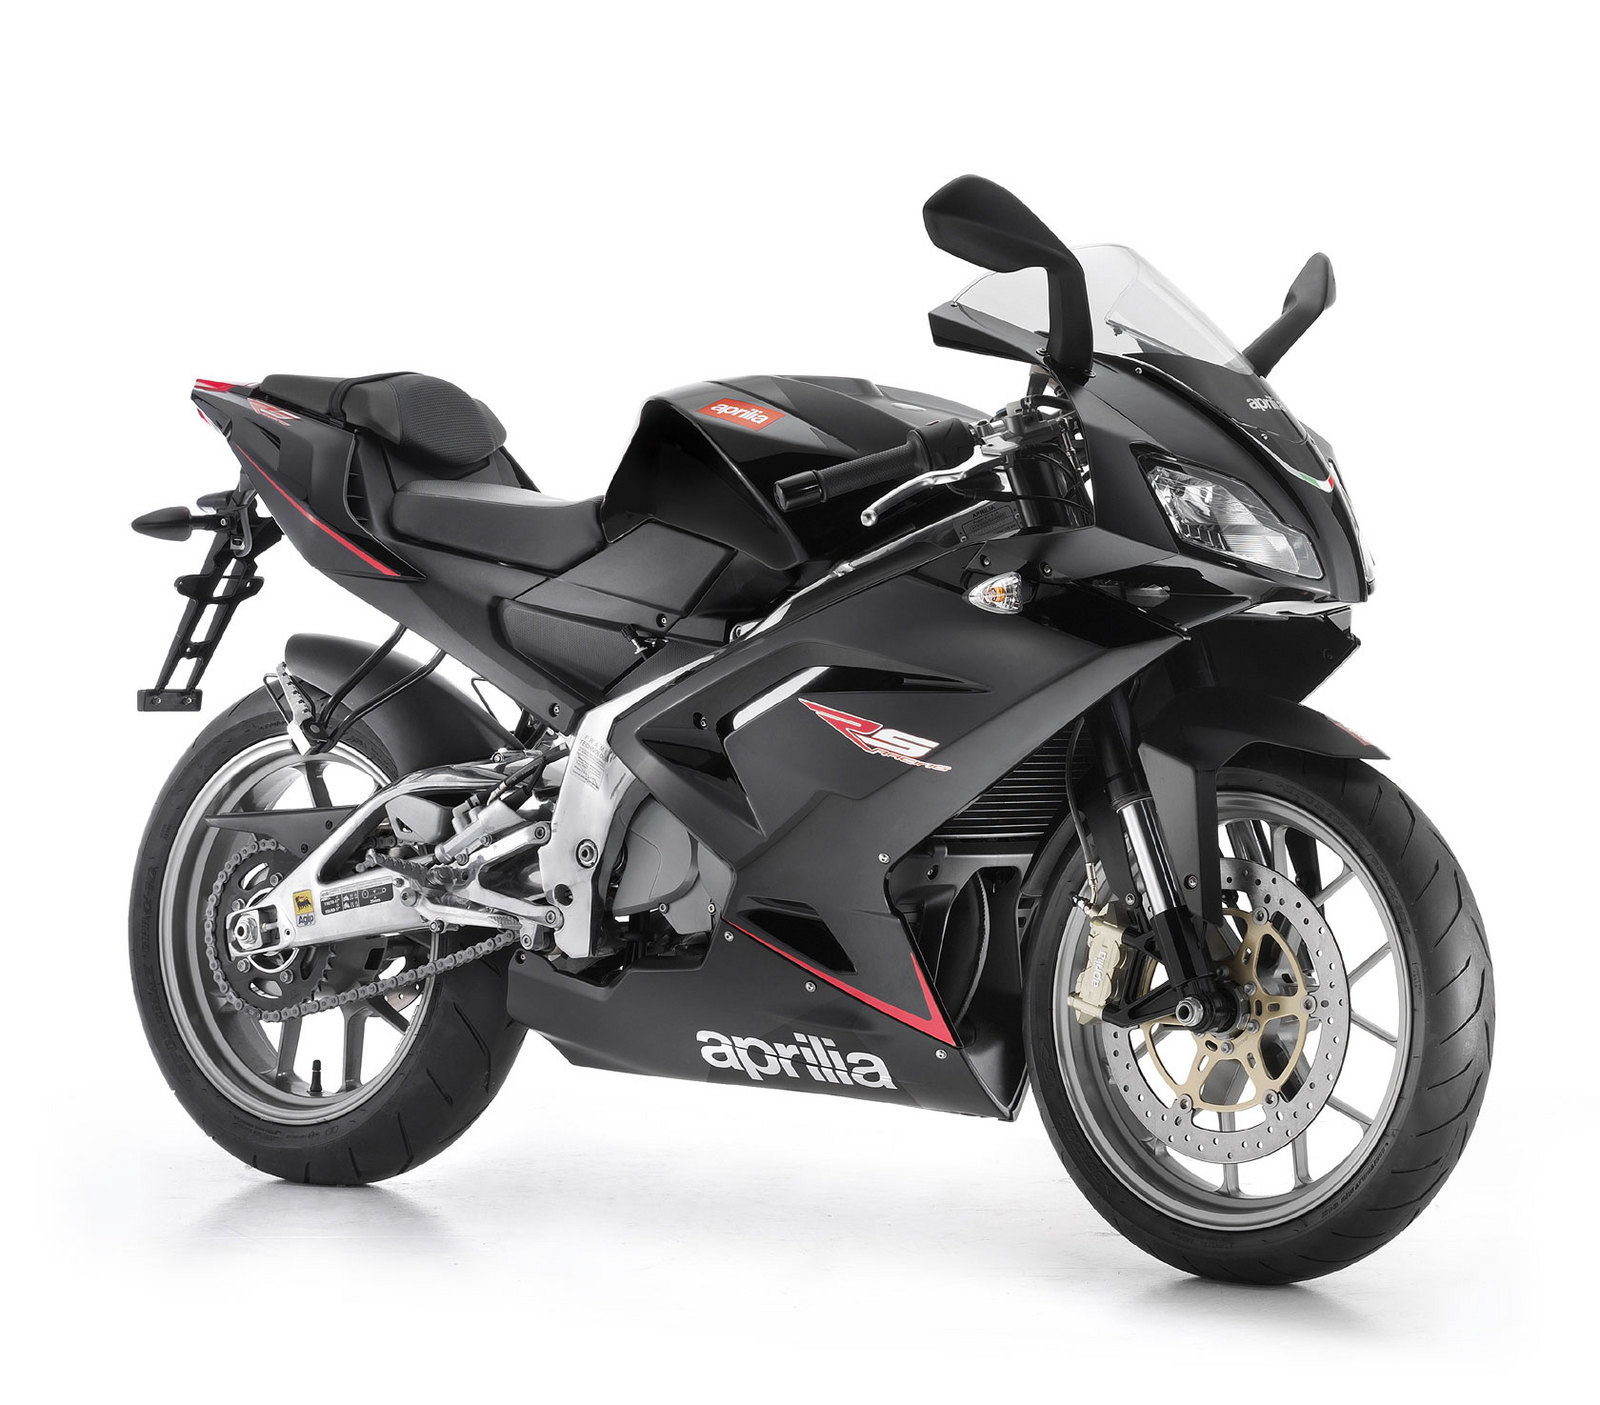 2010 aprilia rs 125 picture 356804 motorcycle review. Black Bedroom Furniture Sets. Home Design Ideas